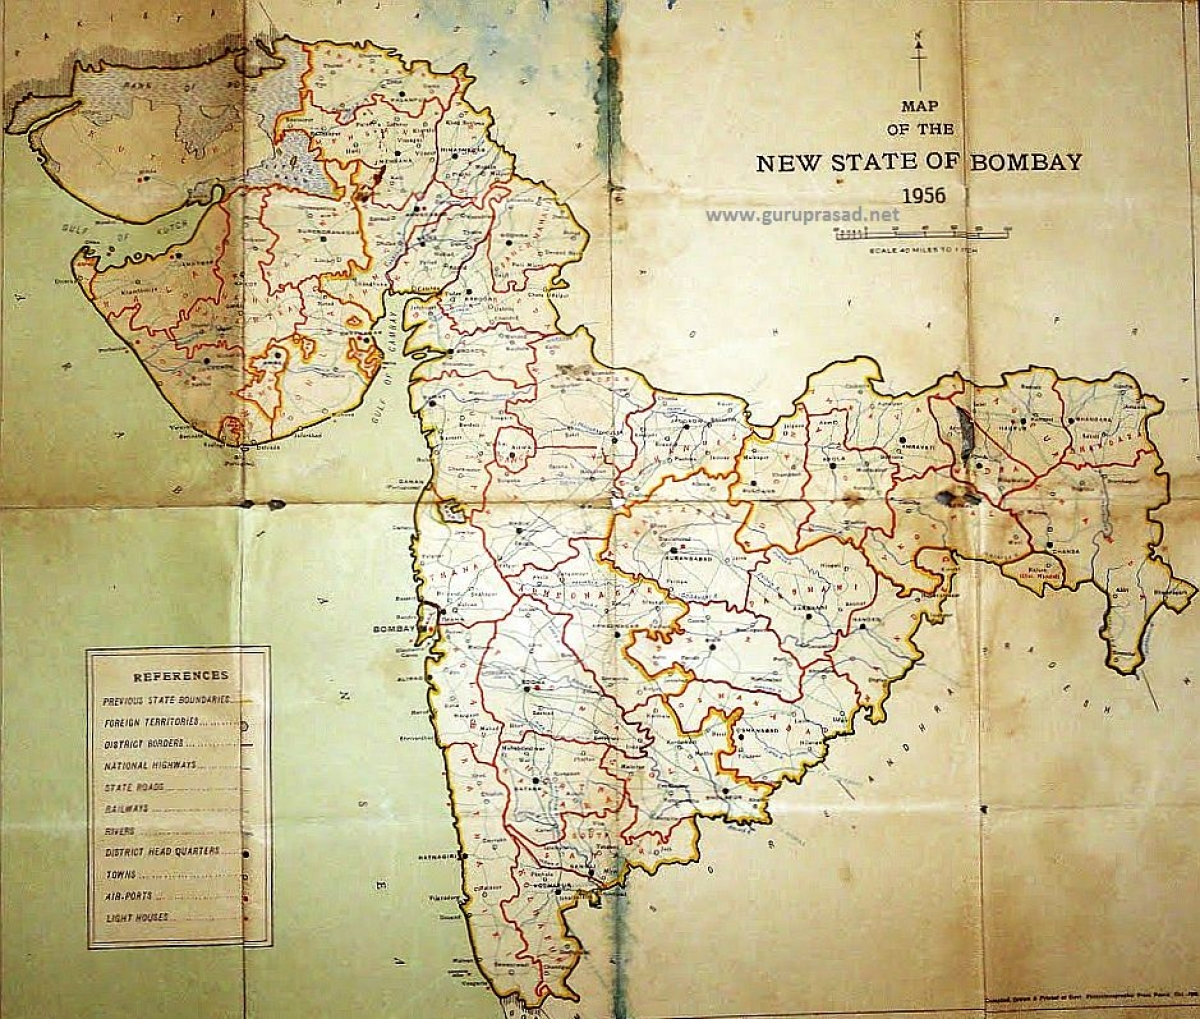 A week after Maharashtra Day, New Delhi sets off worrying tensions with Mumbai